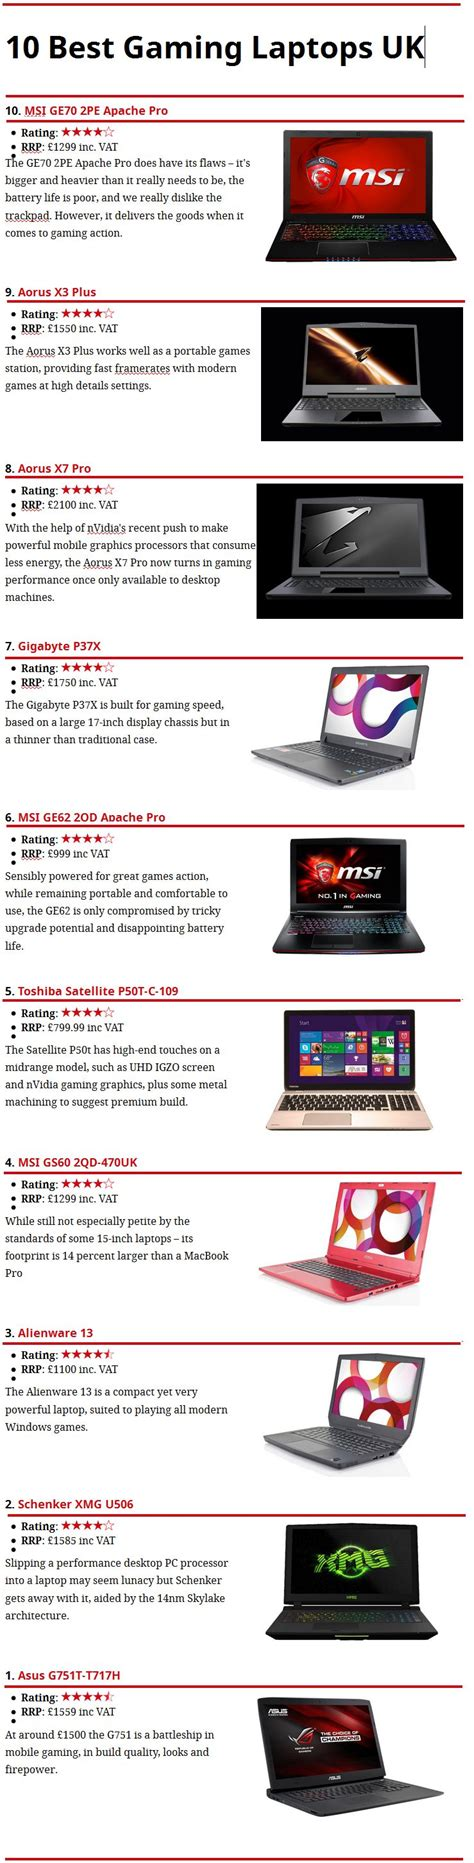 best laptop 2015 top laptops by brand laptop mag ultimate list of best worst most reliable laptop brands